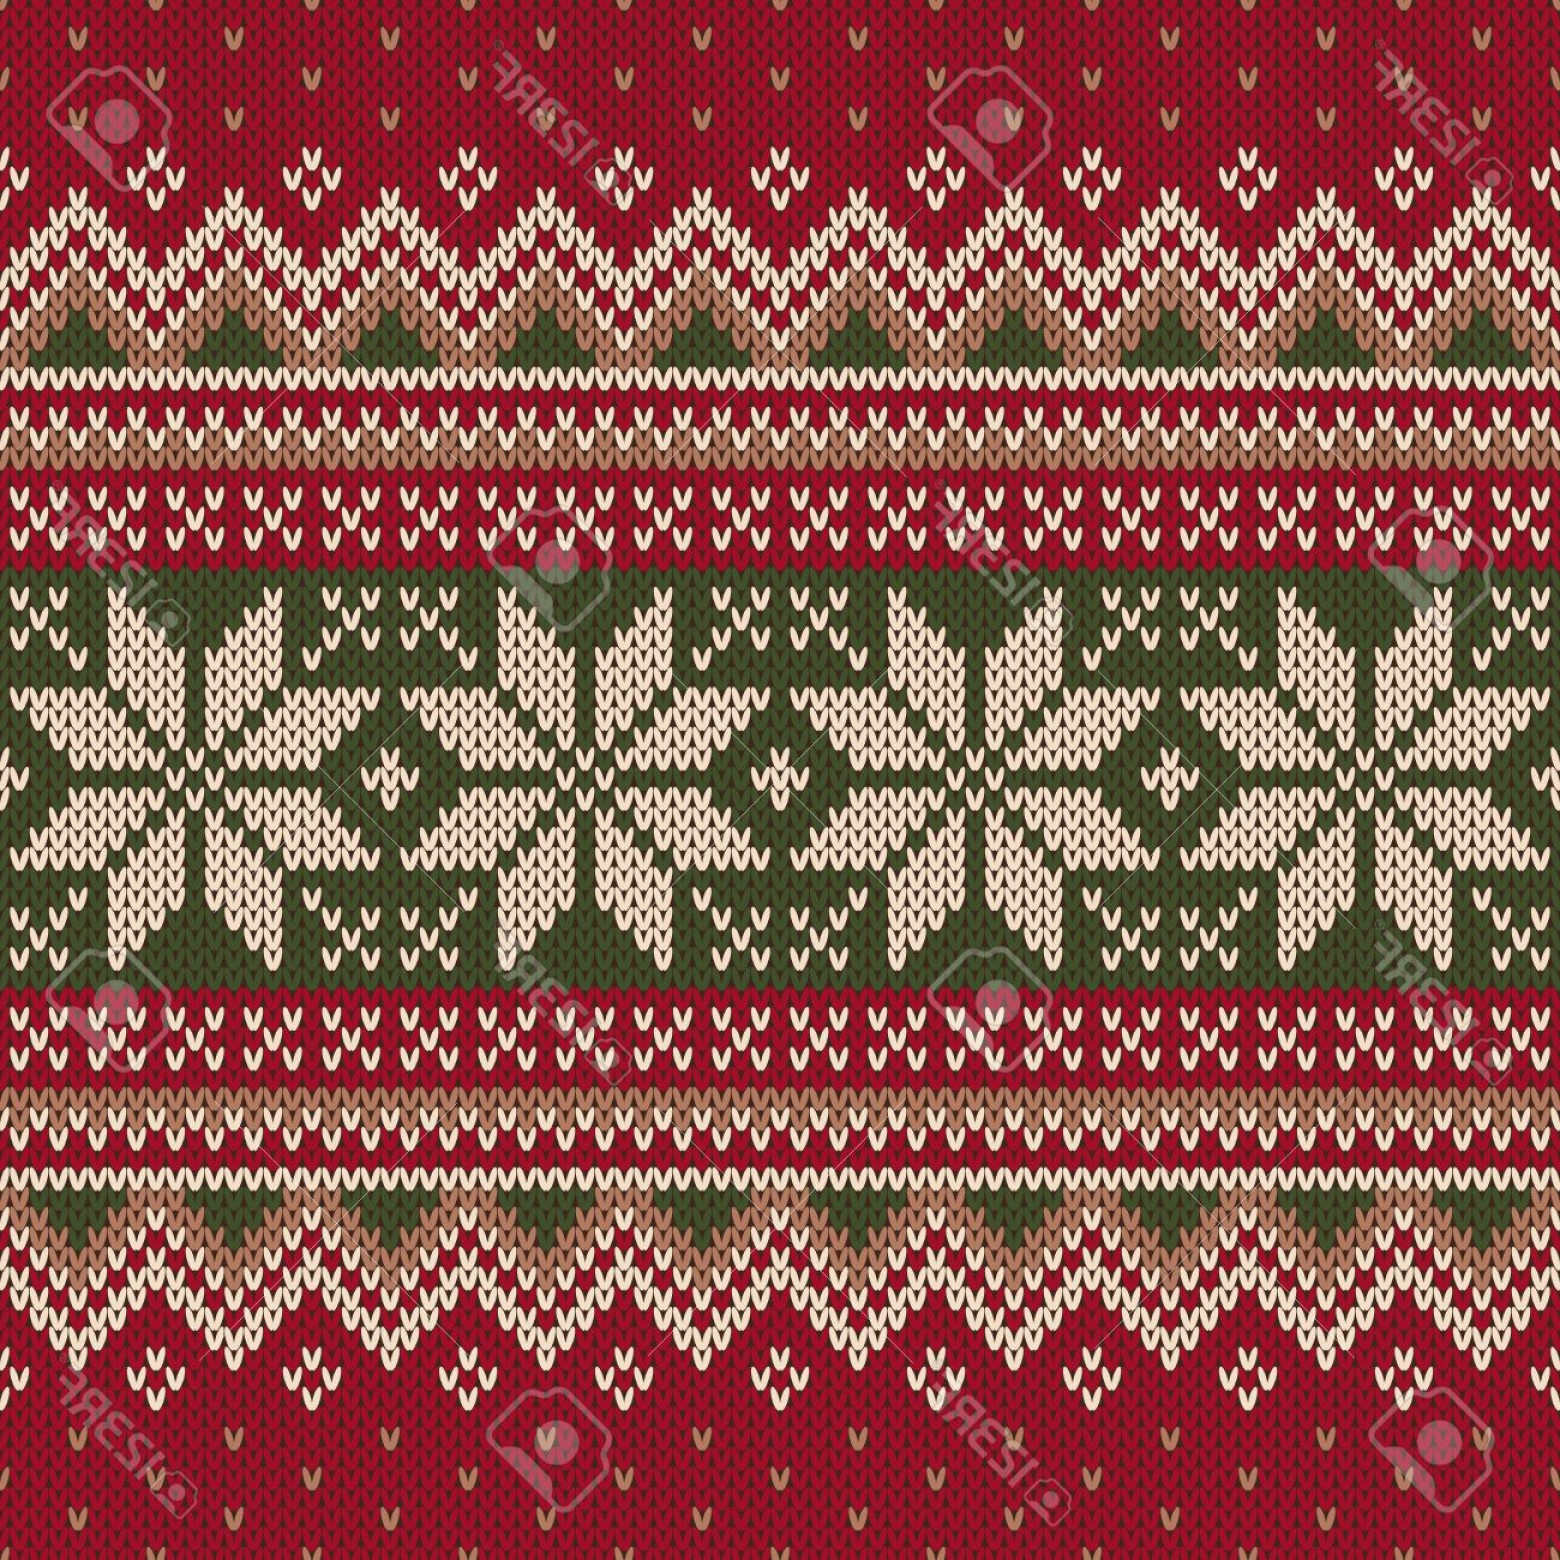 Christmas Sweater Design Vector: Photostock Vector Christmas Sweater Design Seamless Knitting Pattern